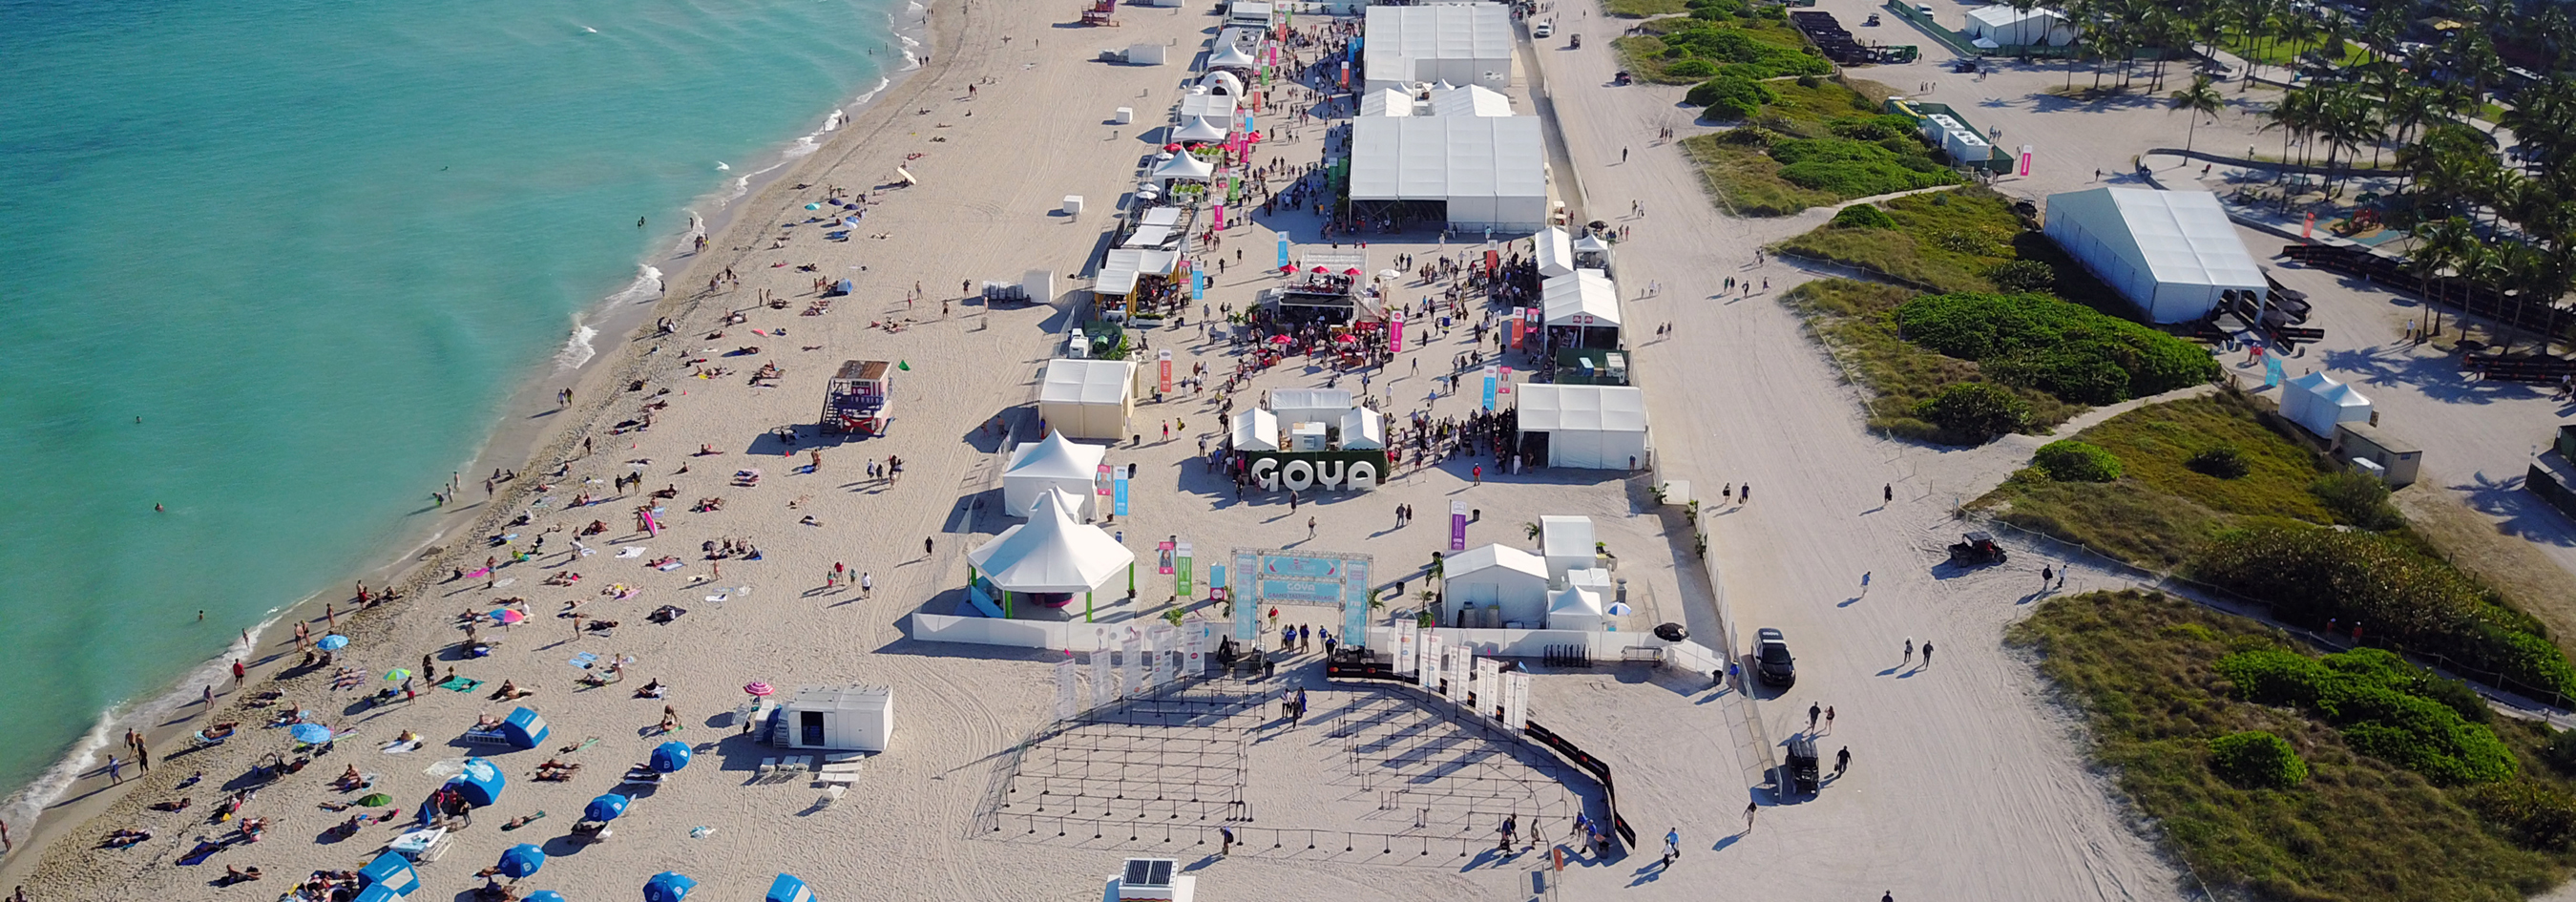 SOBEWFF stretching across South Beach